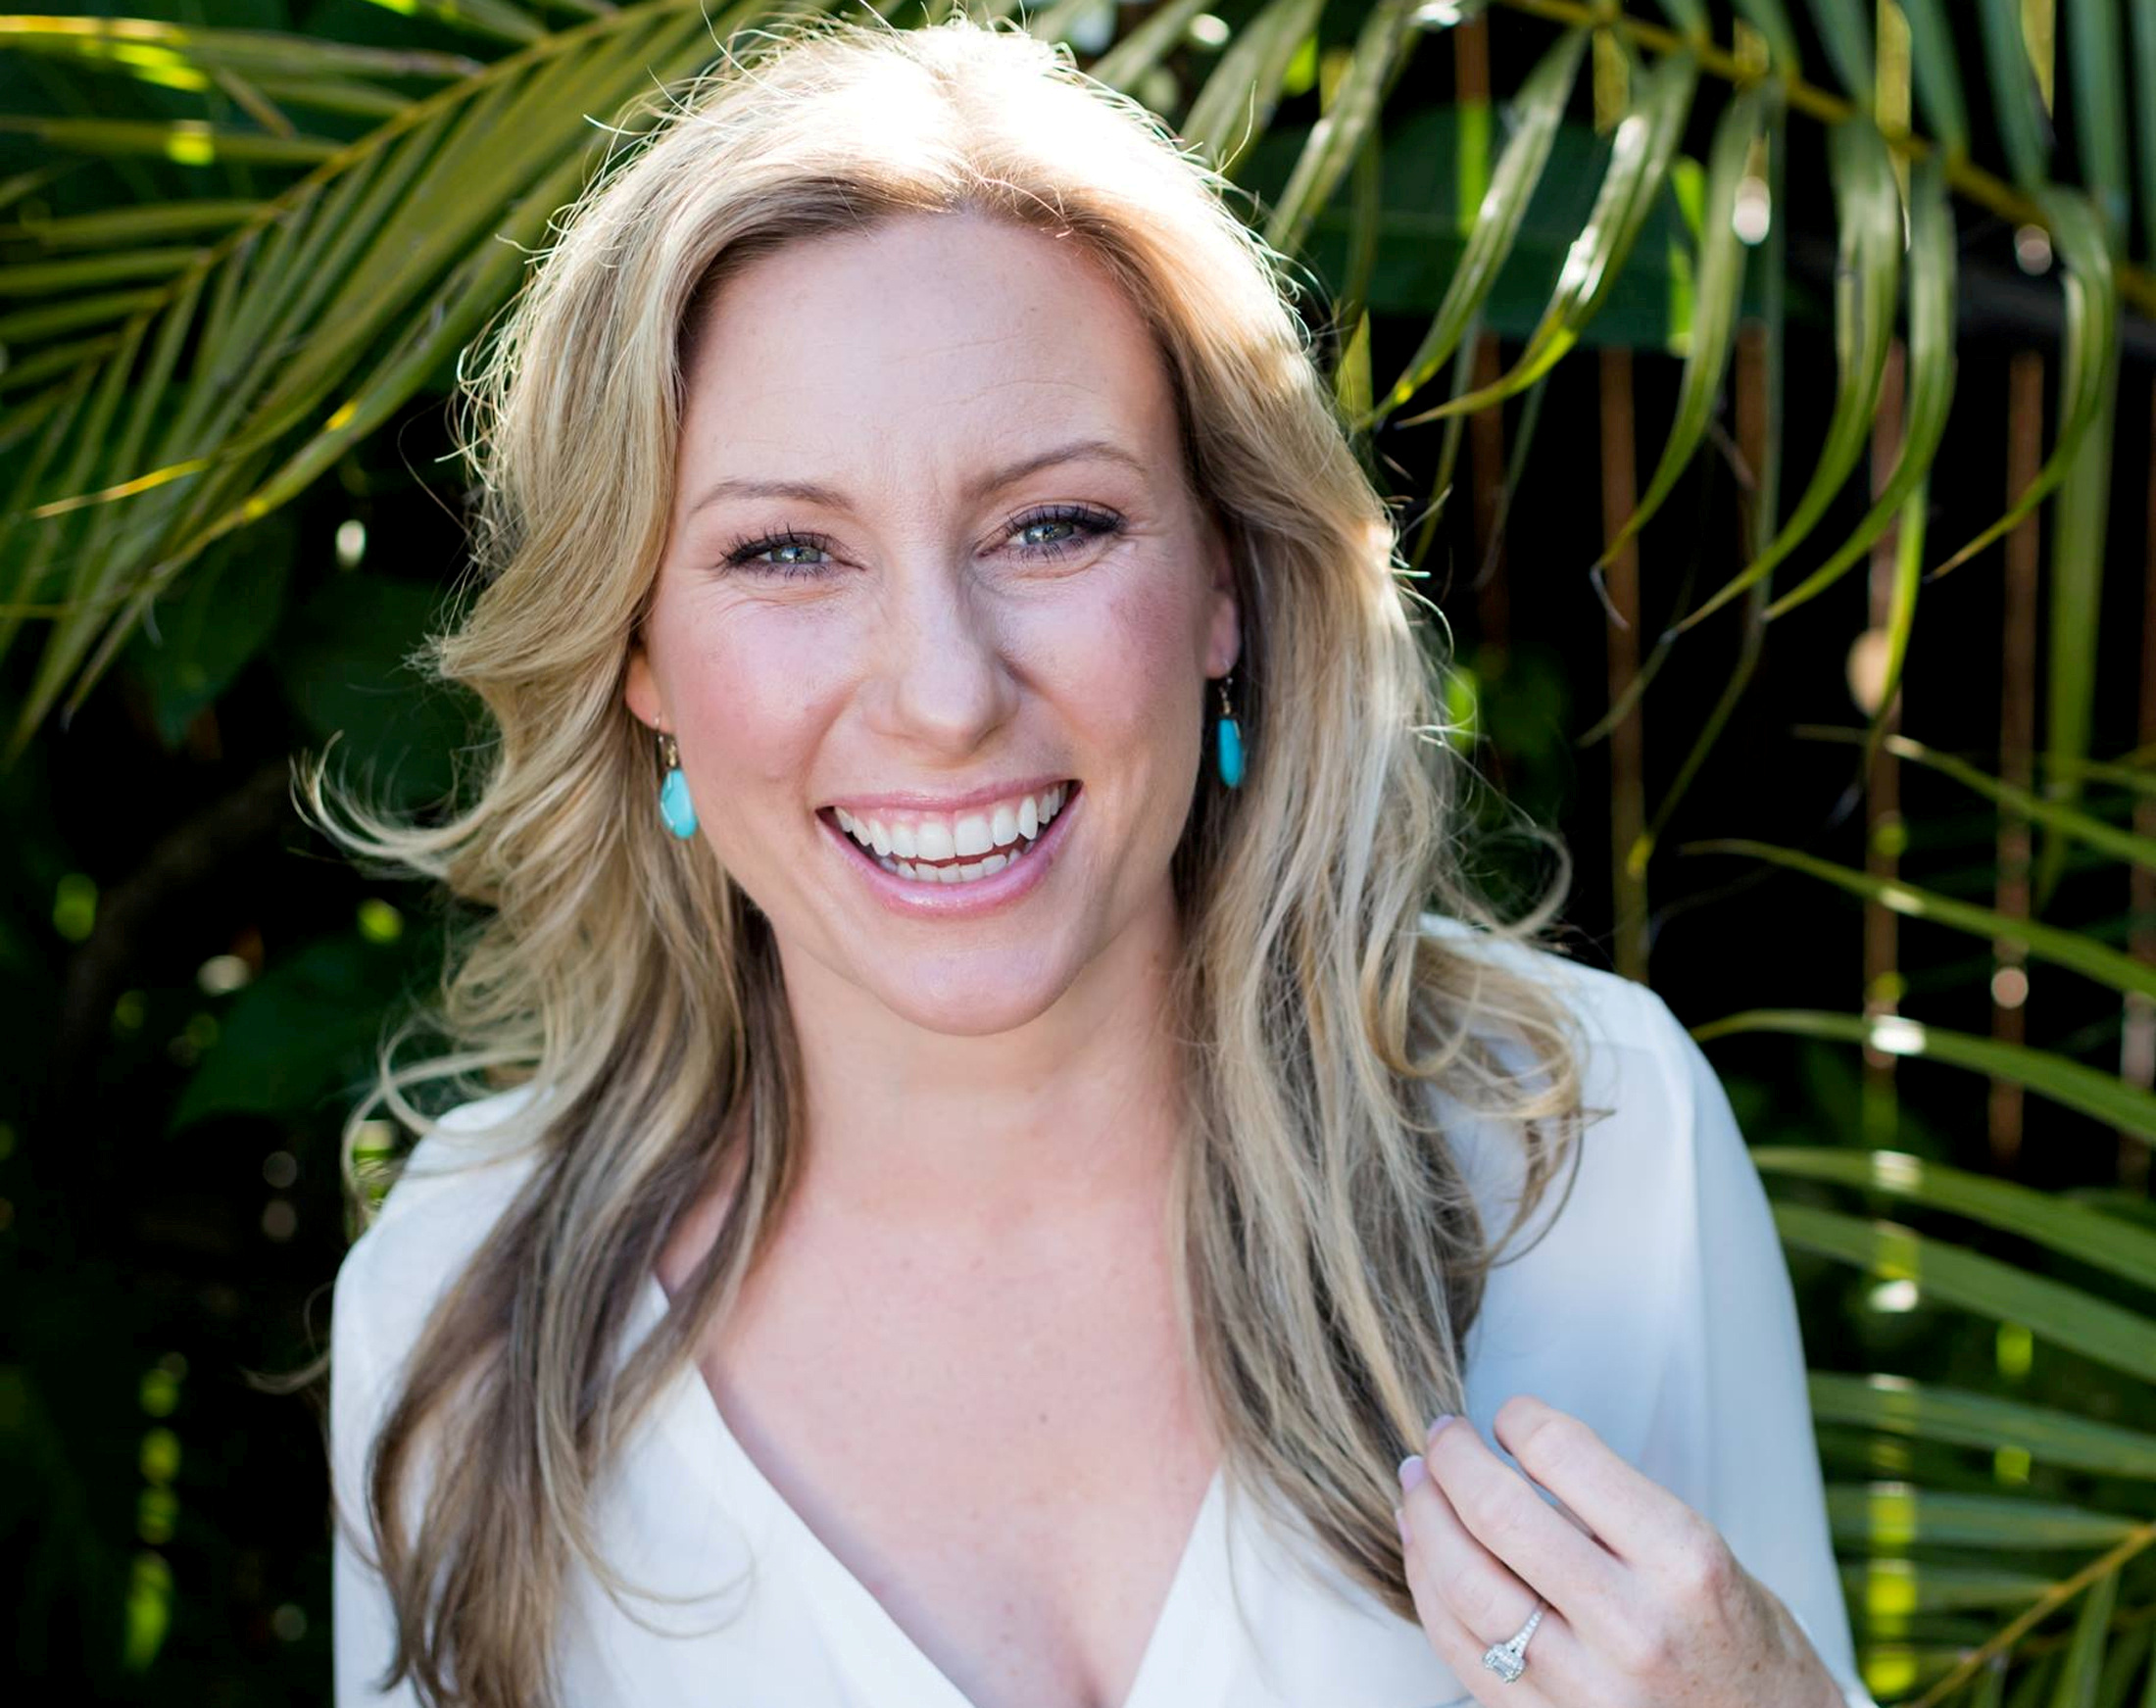 FILE - Justine Damond, also known as Justine Ruszczyk, from Sydney, is seen in this 2015 photo released by Stephen Govel Photography in New York, U.S., on July 17, 2017.